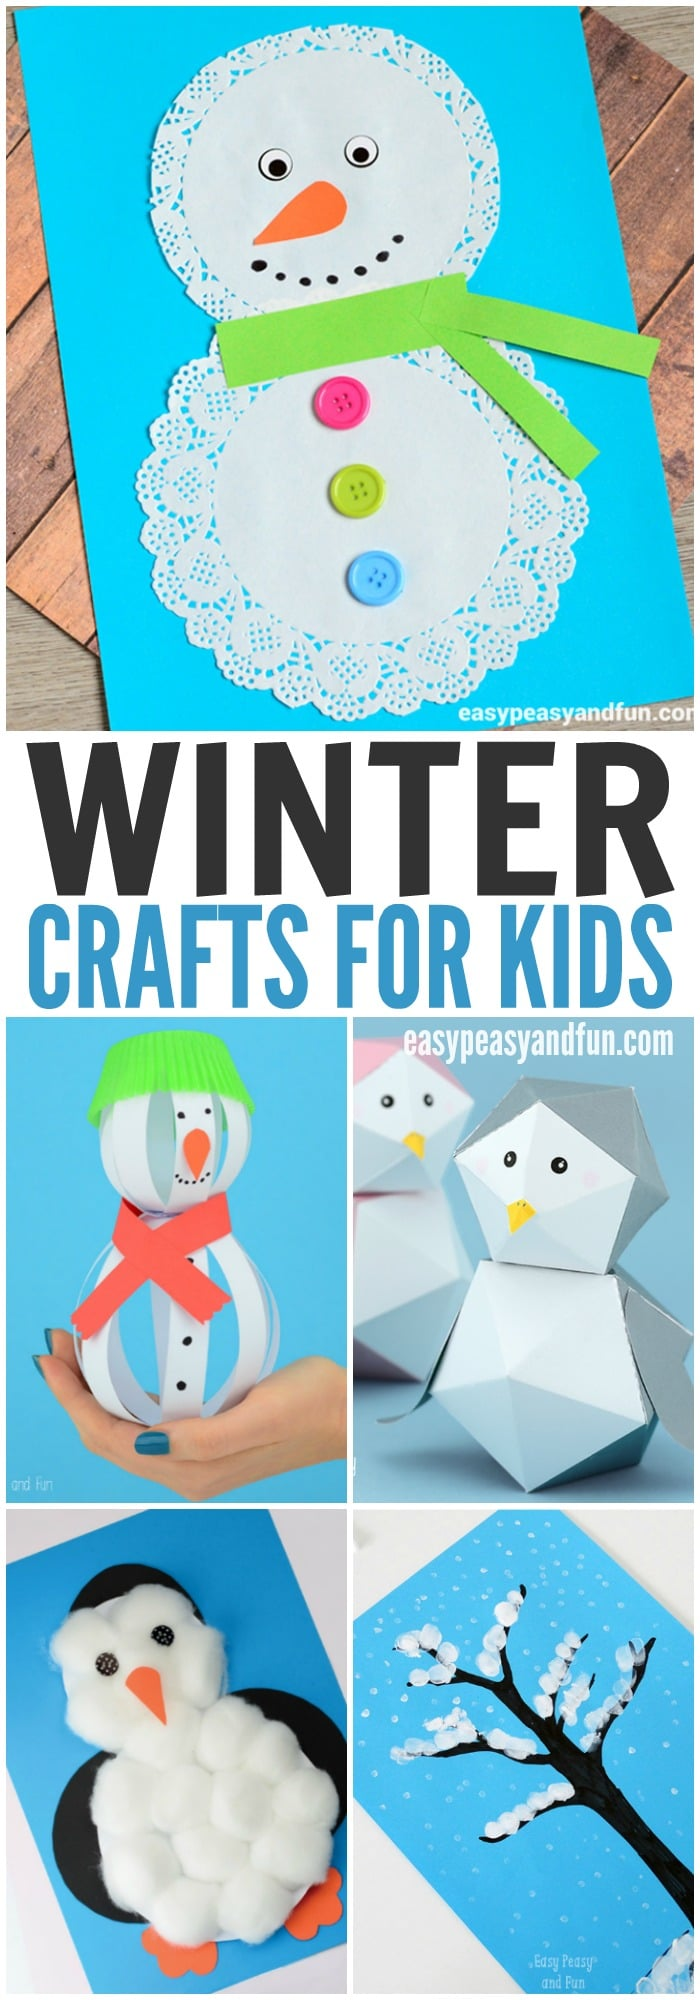 Art Craft Ideas Winter Crafts For Kids To Make Fun Art And Craft Ideas For All